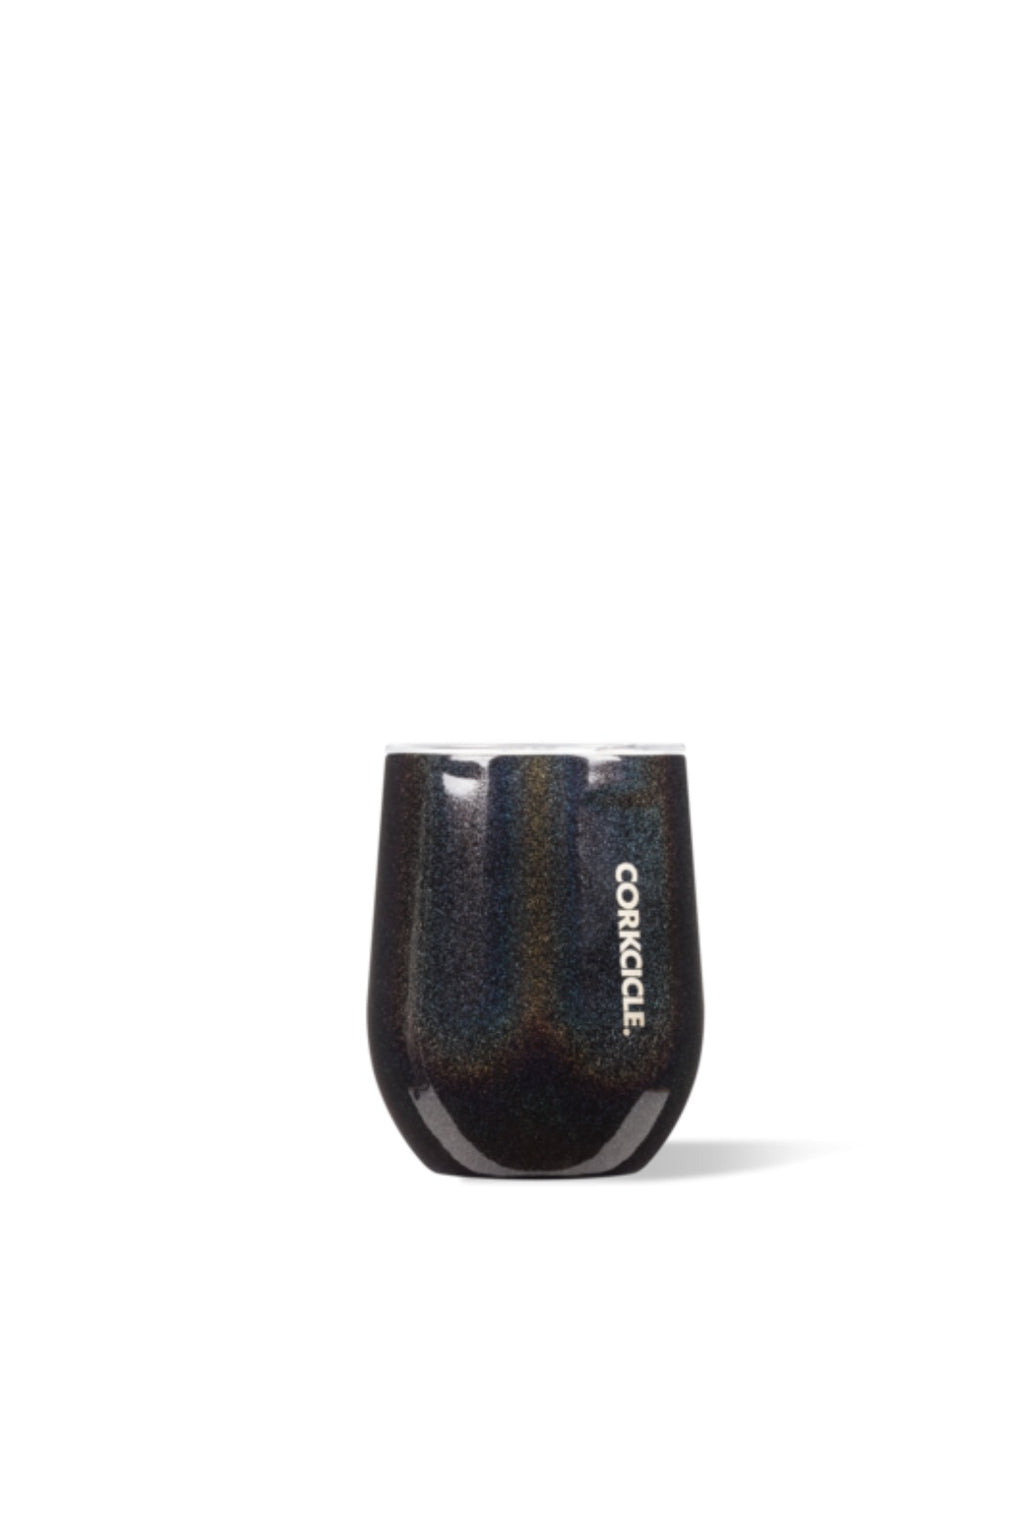 Corkcicle  12 oz. Stemless - Limited in Unicorn Sparkle Stardust